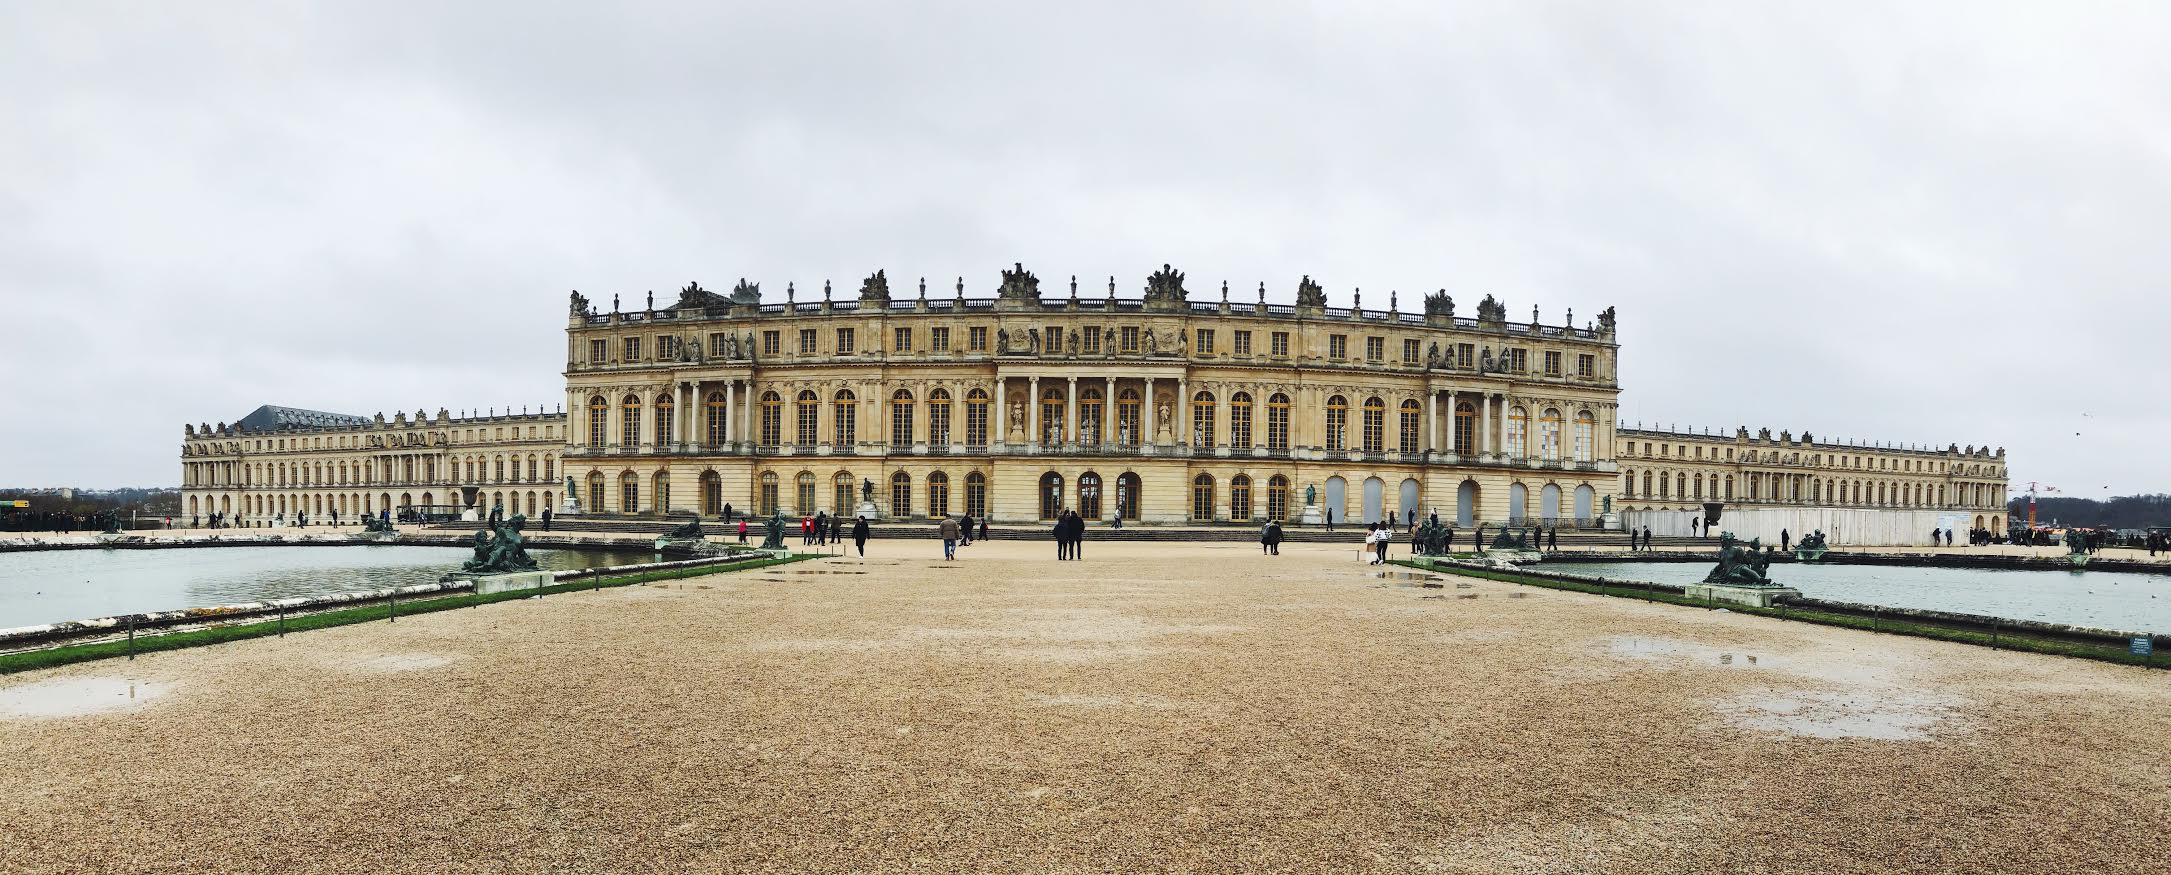 Muslim-travel-guide-Paris-Palace-of-Versailles-exterior.jpg